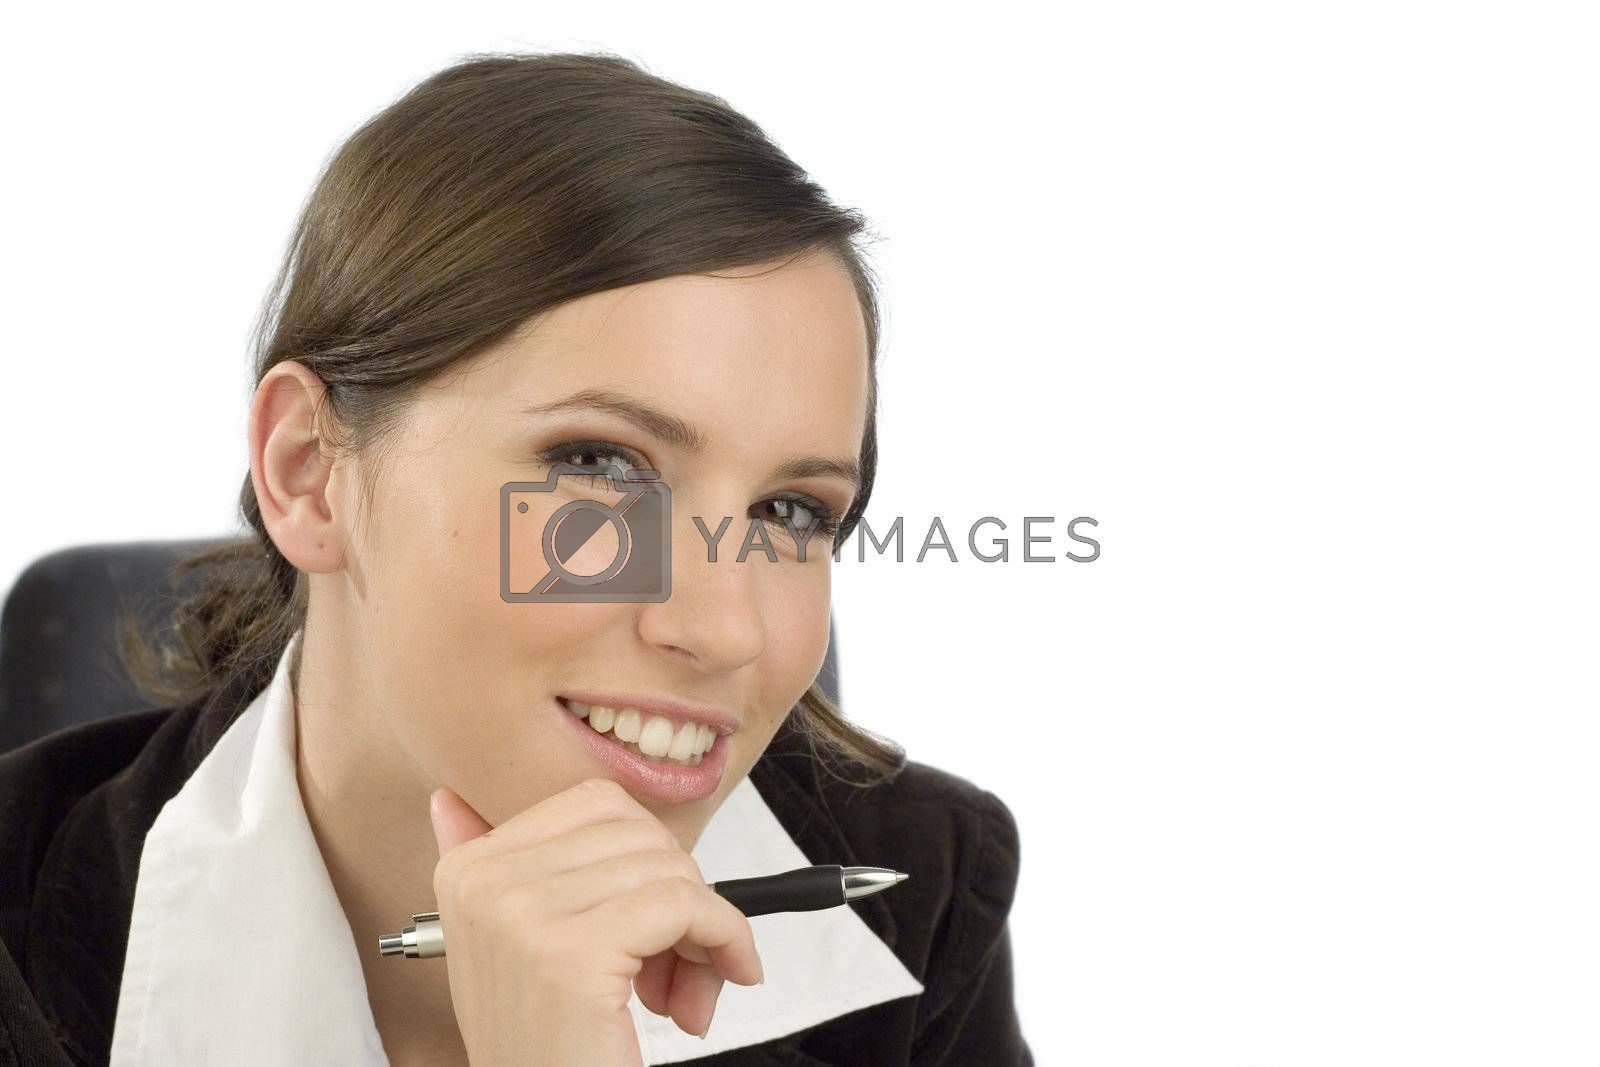 Friendly looking young woman with a ballpen in her hand